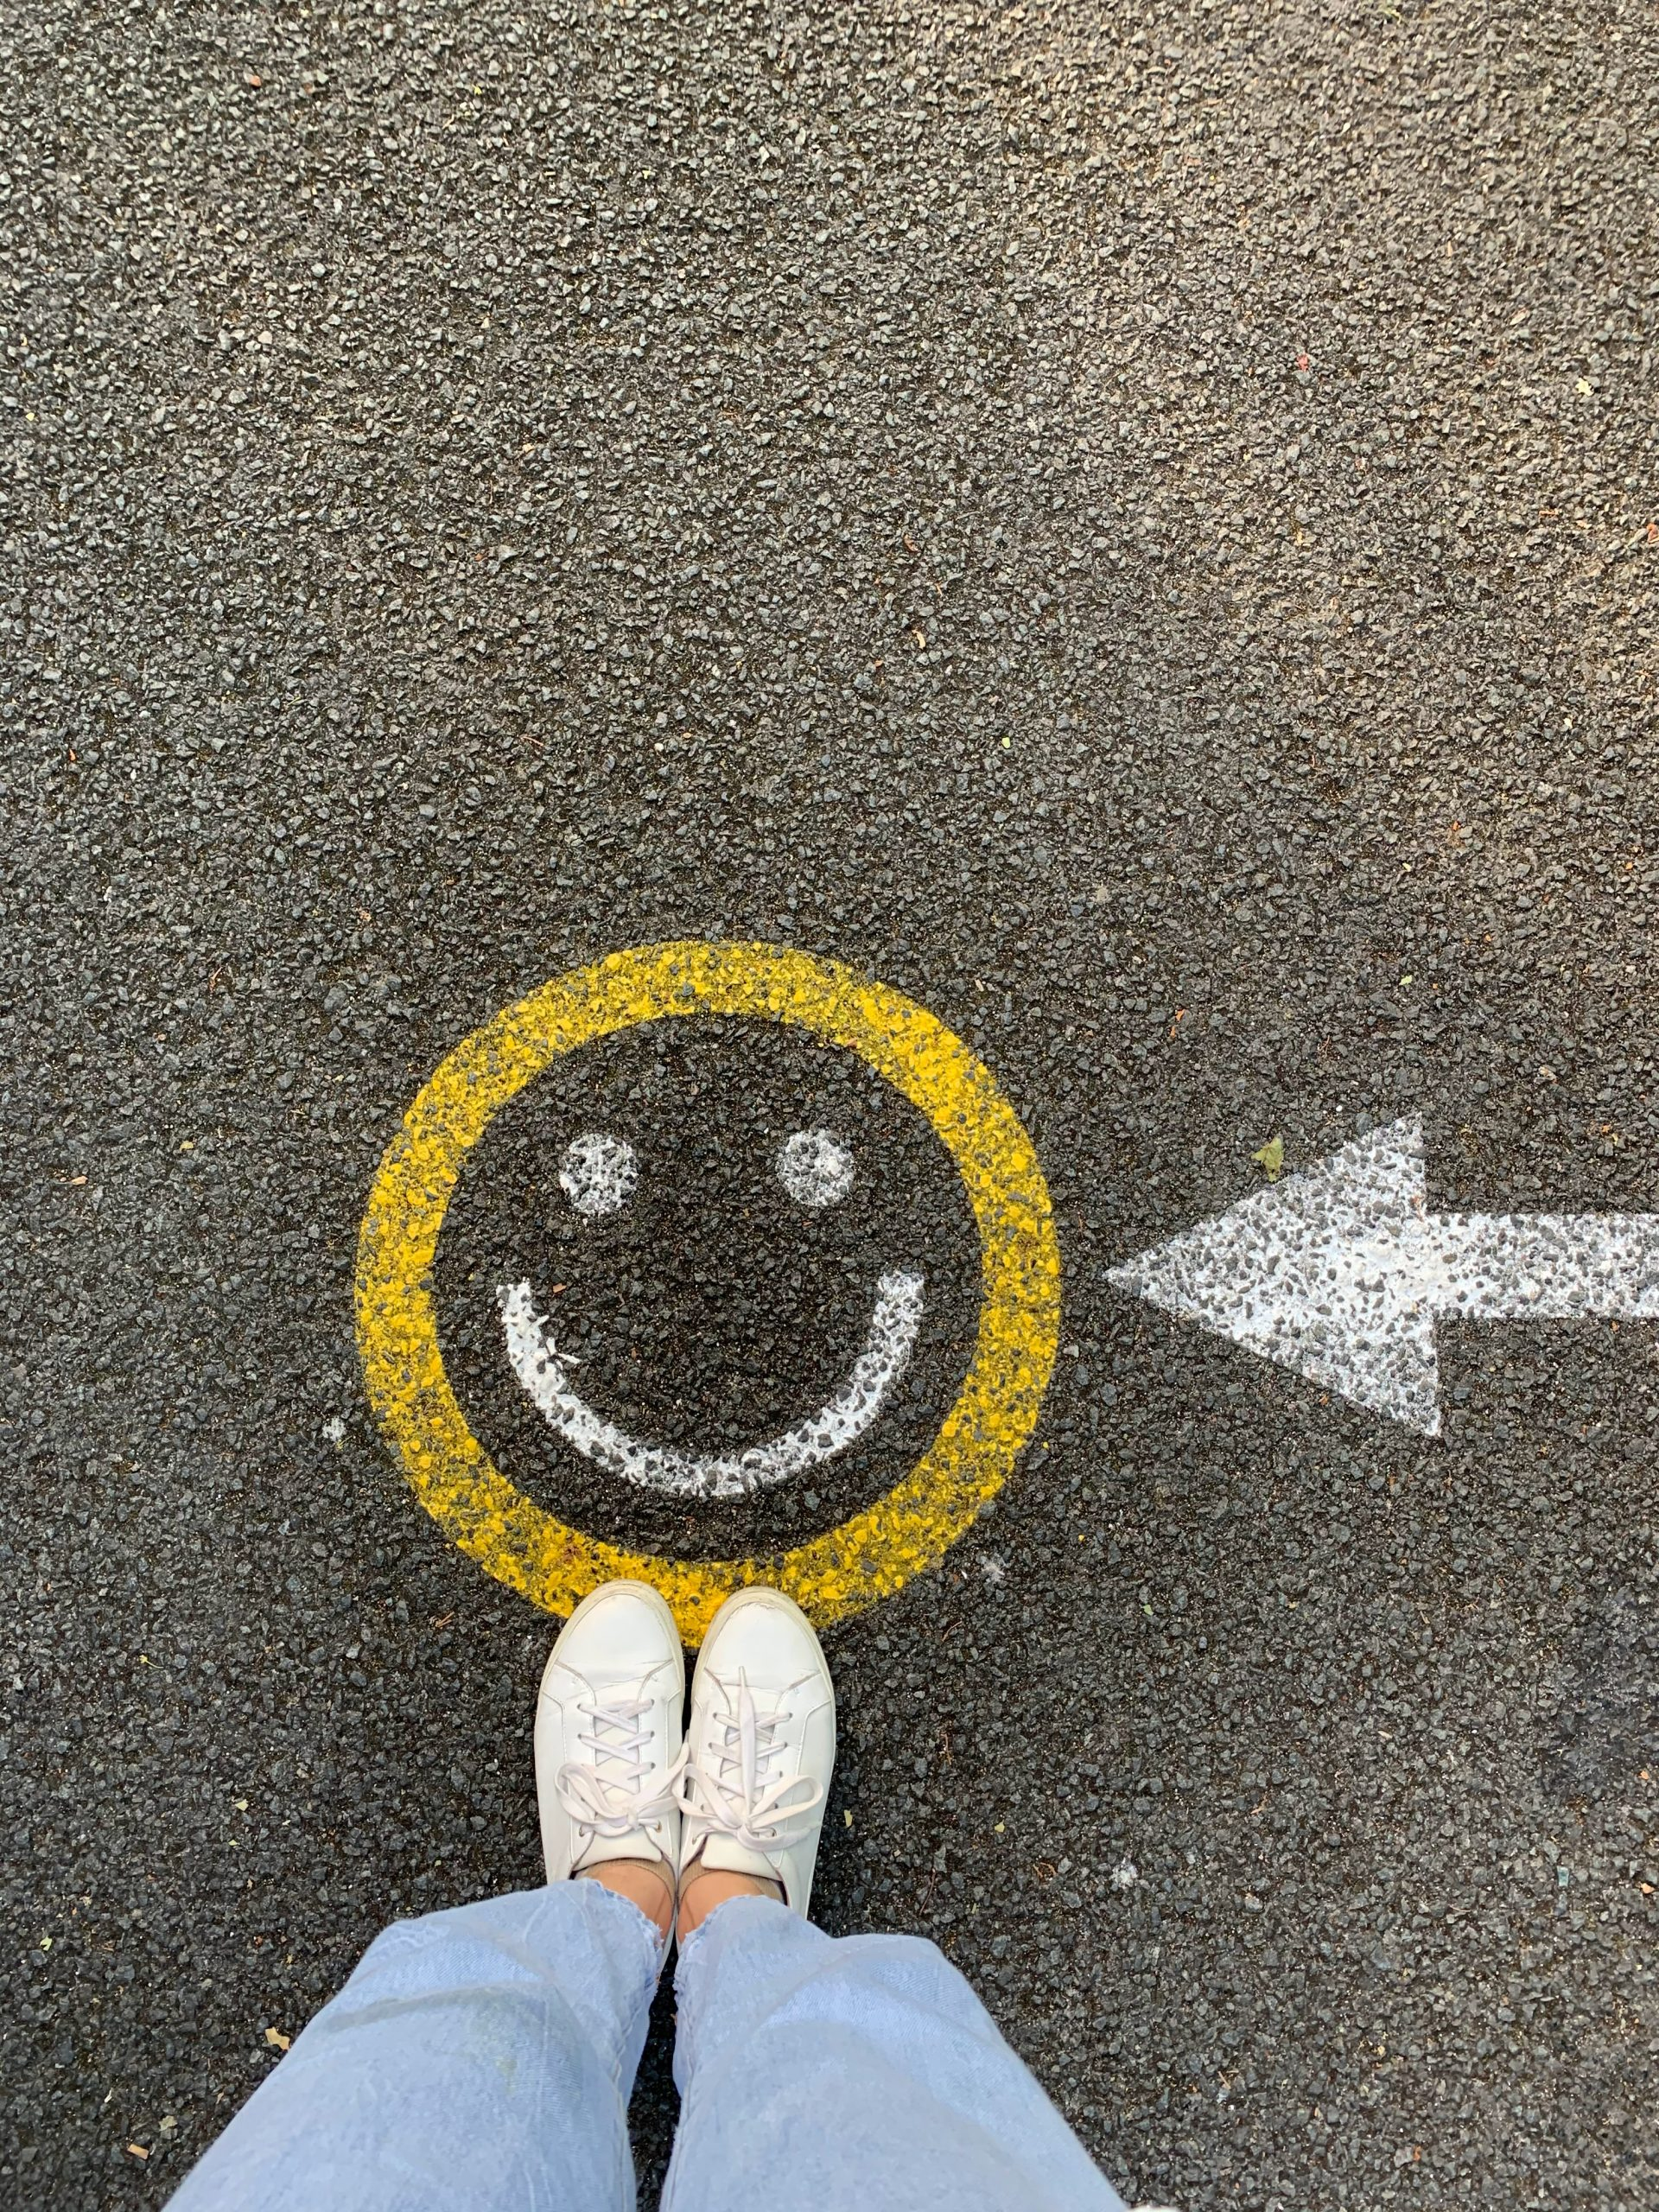 Woman standing at the feet of a smiley